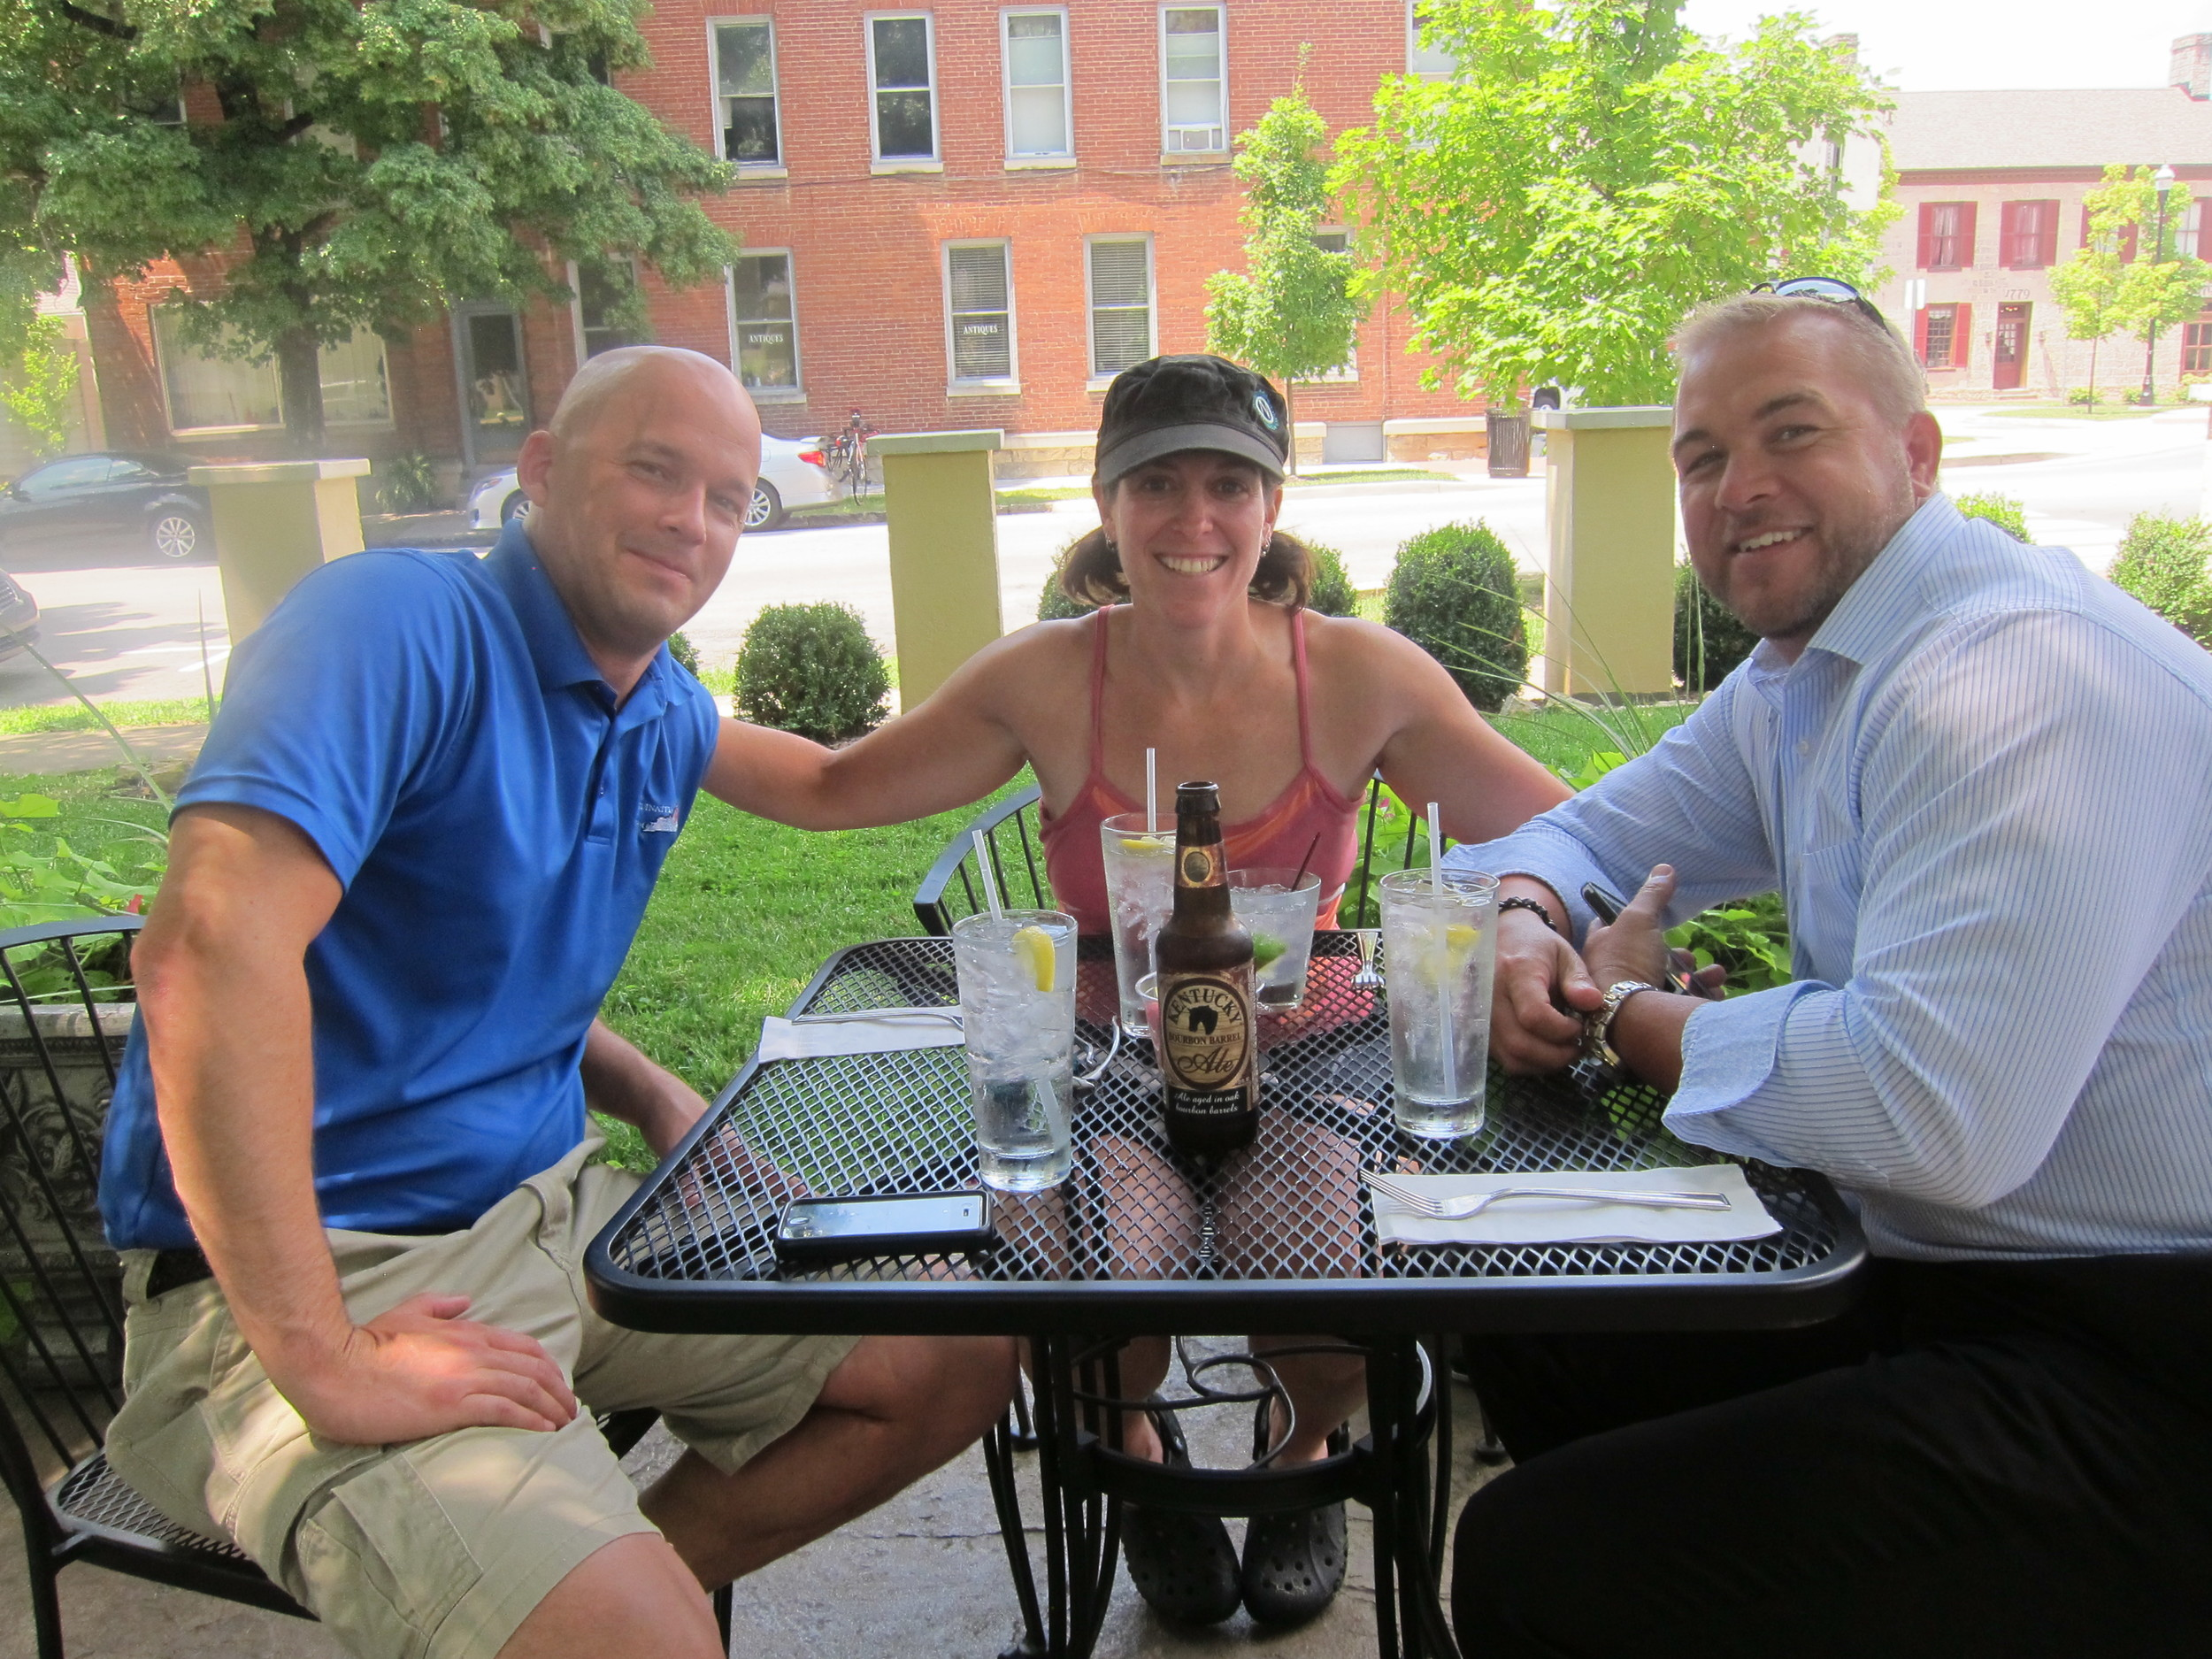 Lunch with Jamie and Todd in Circa in Bardstown.